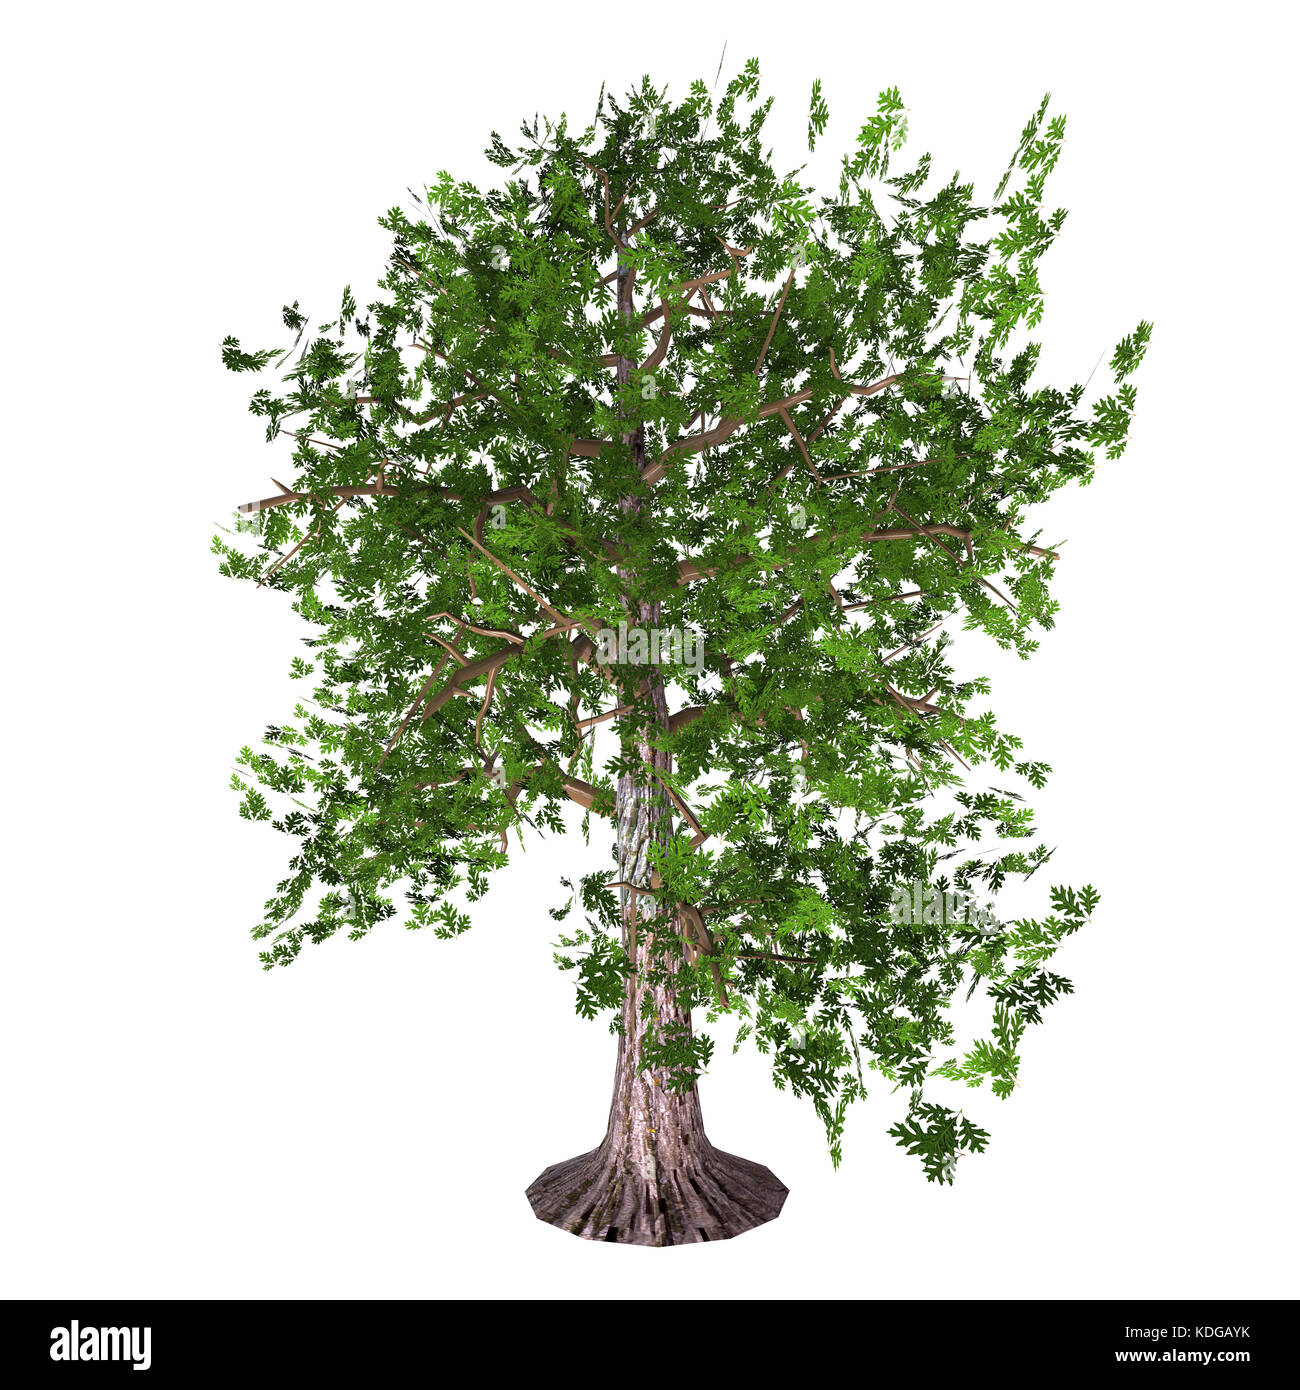 Oak Tree - The Oak tree comes in 600 different species as a deciduous or evergreen variety and develops an acorn - Stock Image